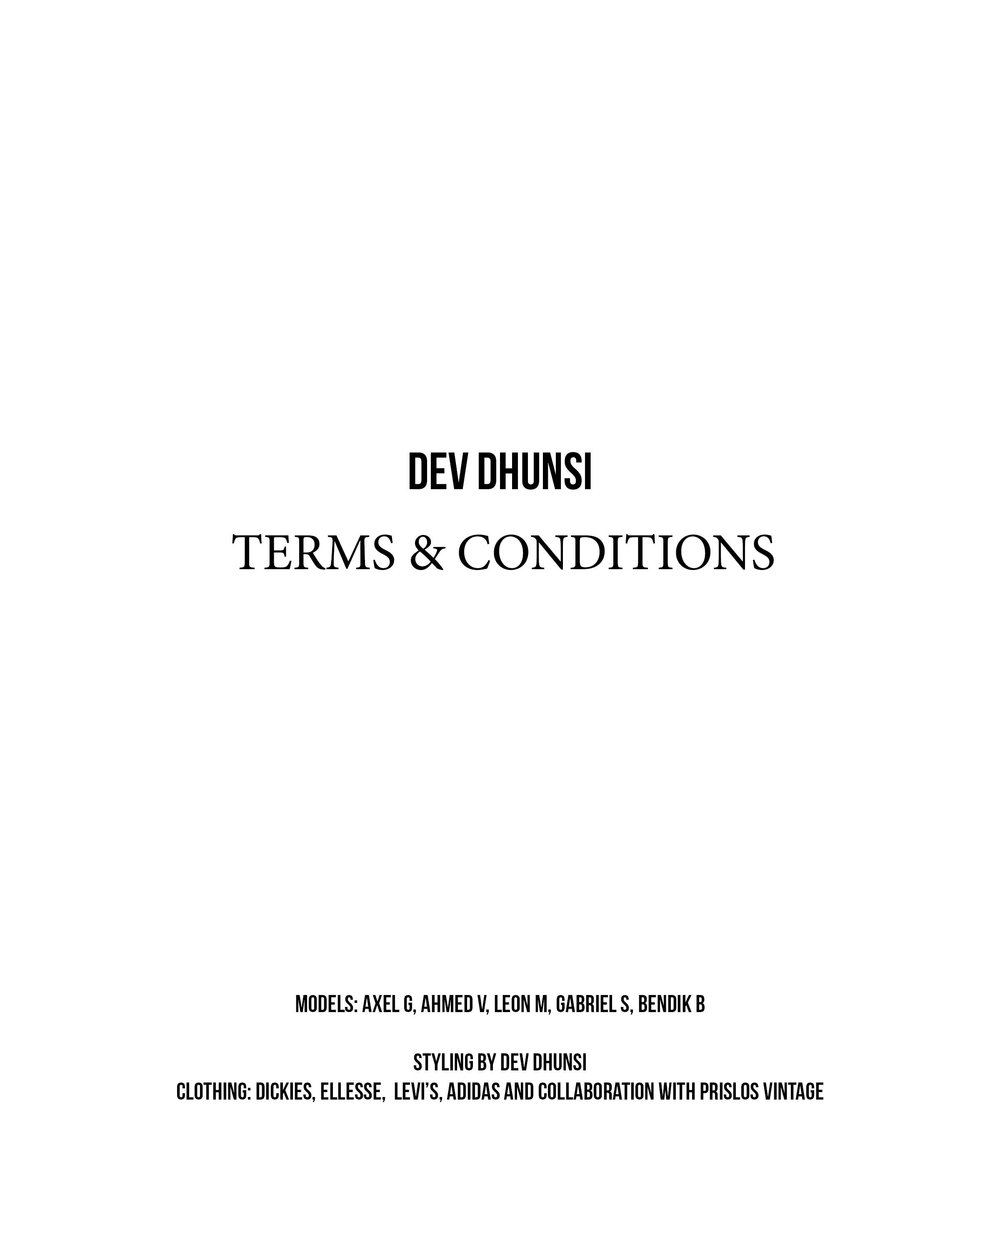 extended_terms nd conditions.jpg